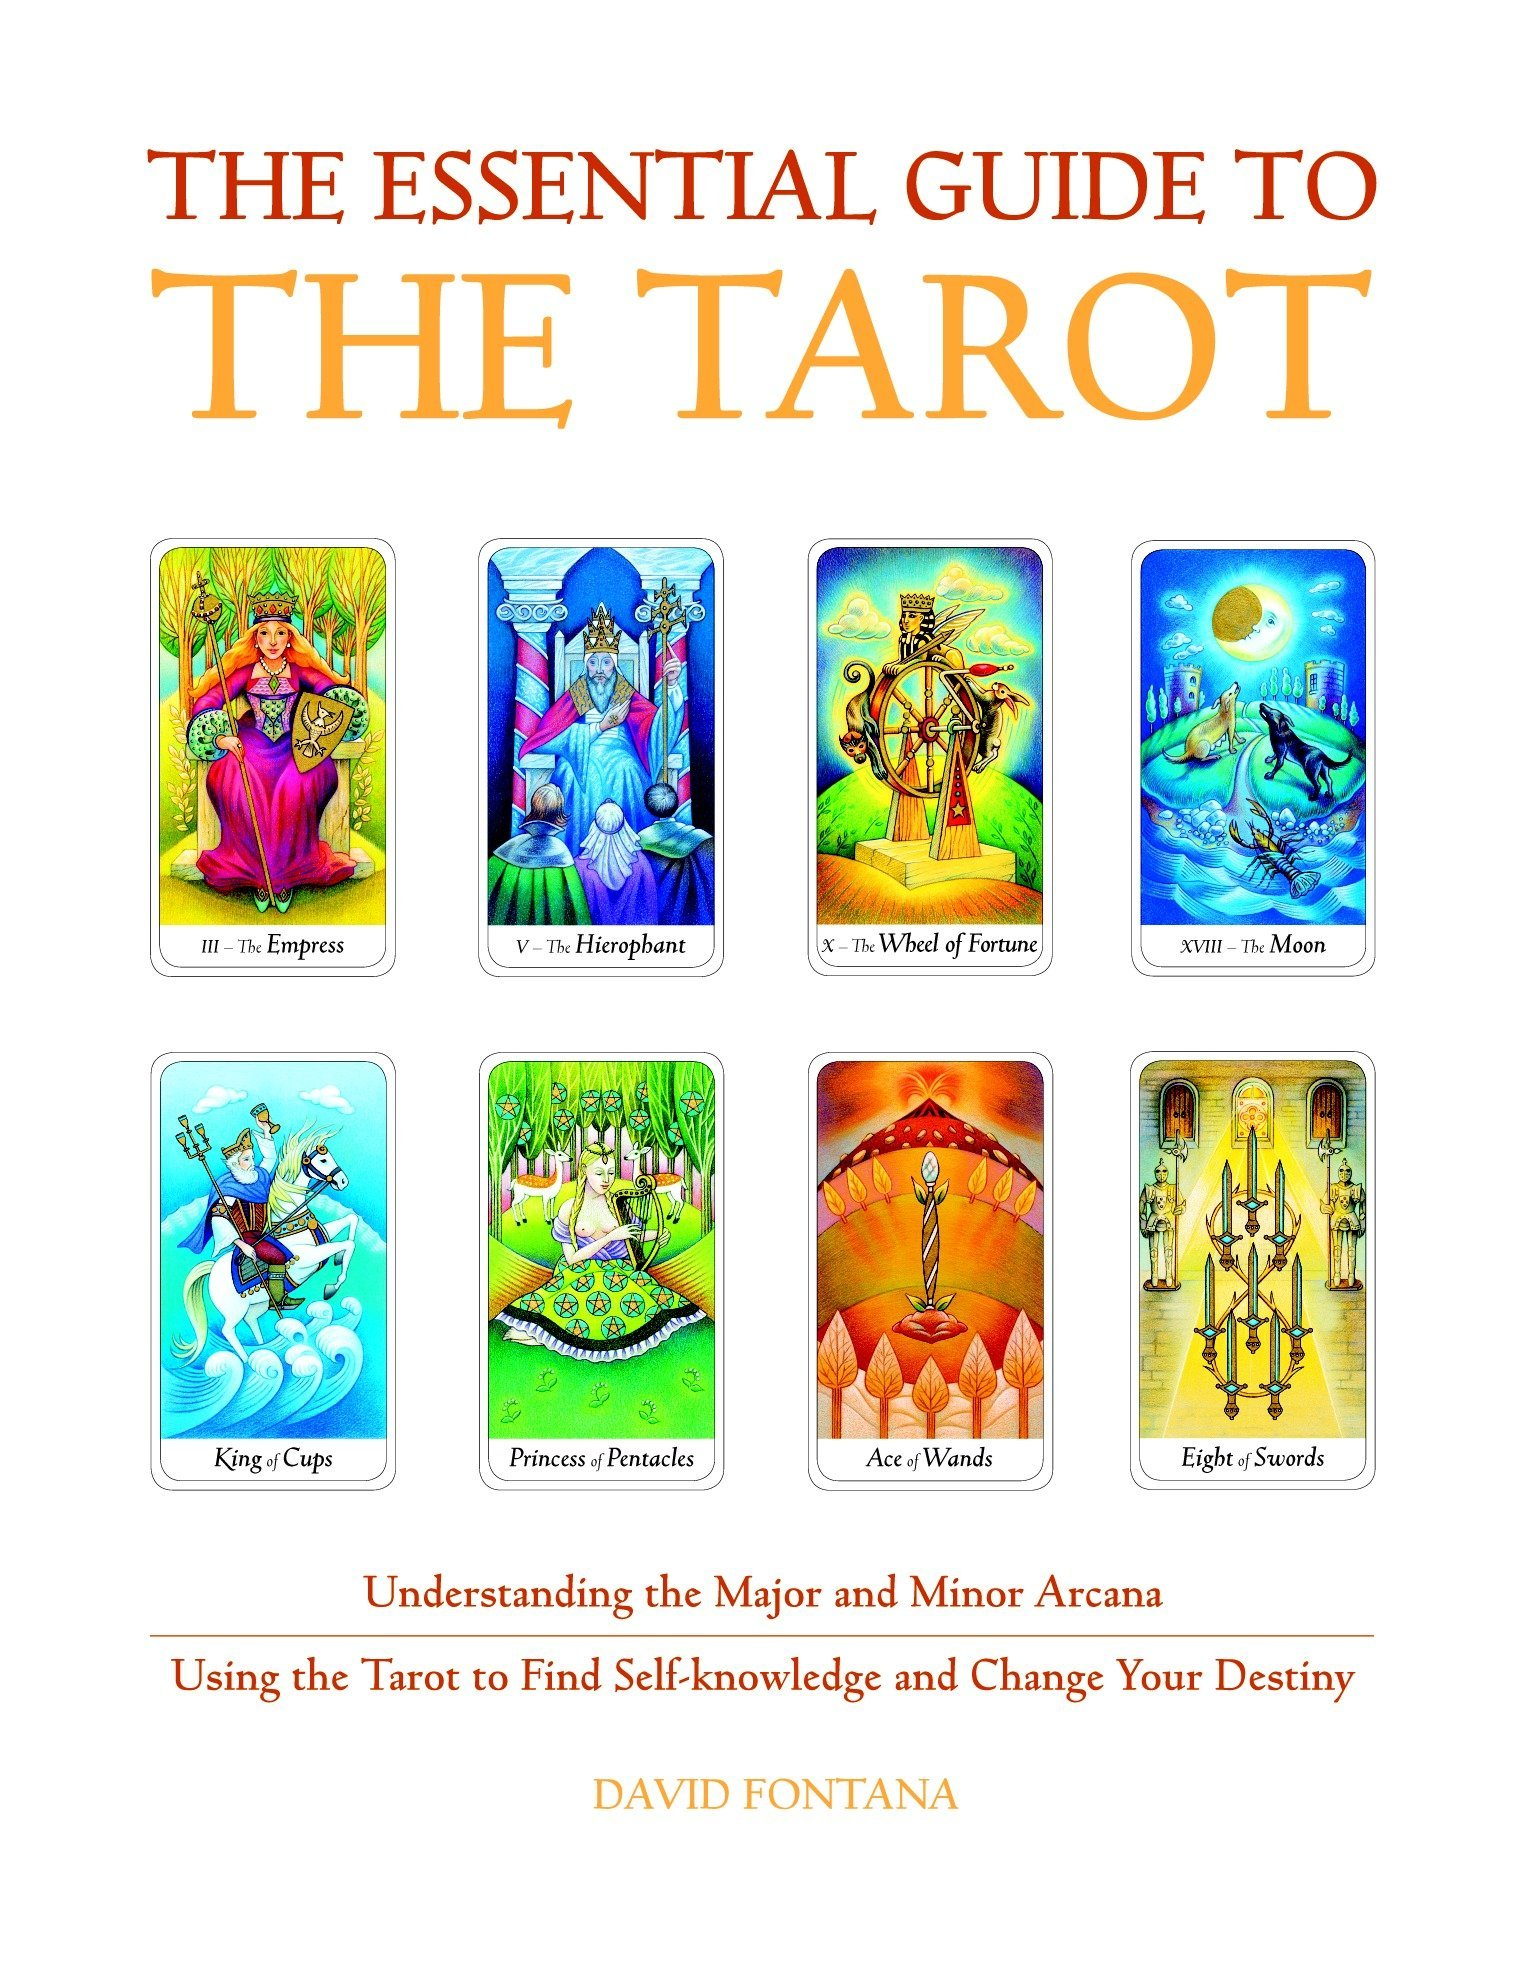 The ultimate guide to tarot spreads review | @tabitarot blog archive.